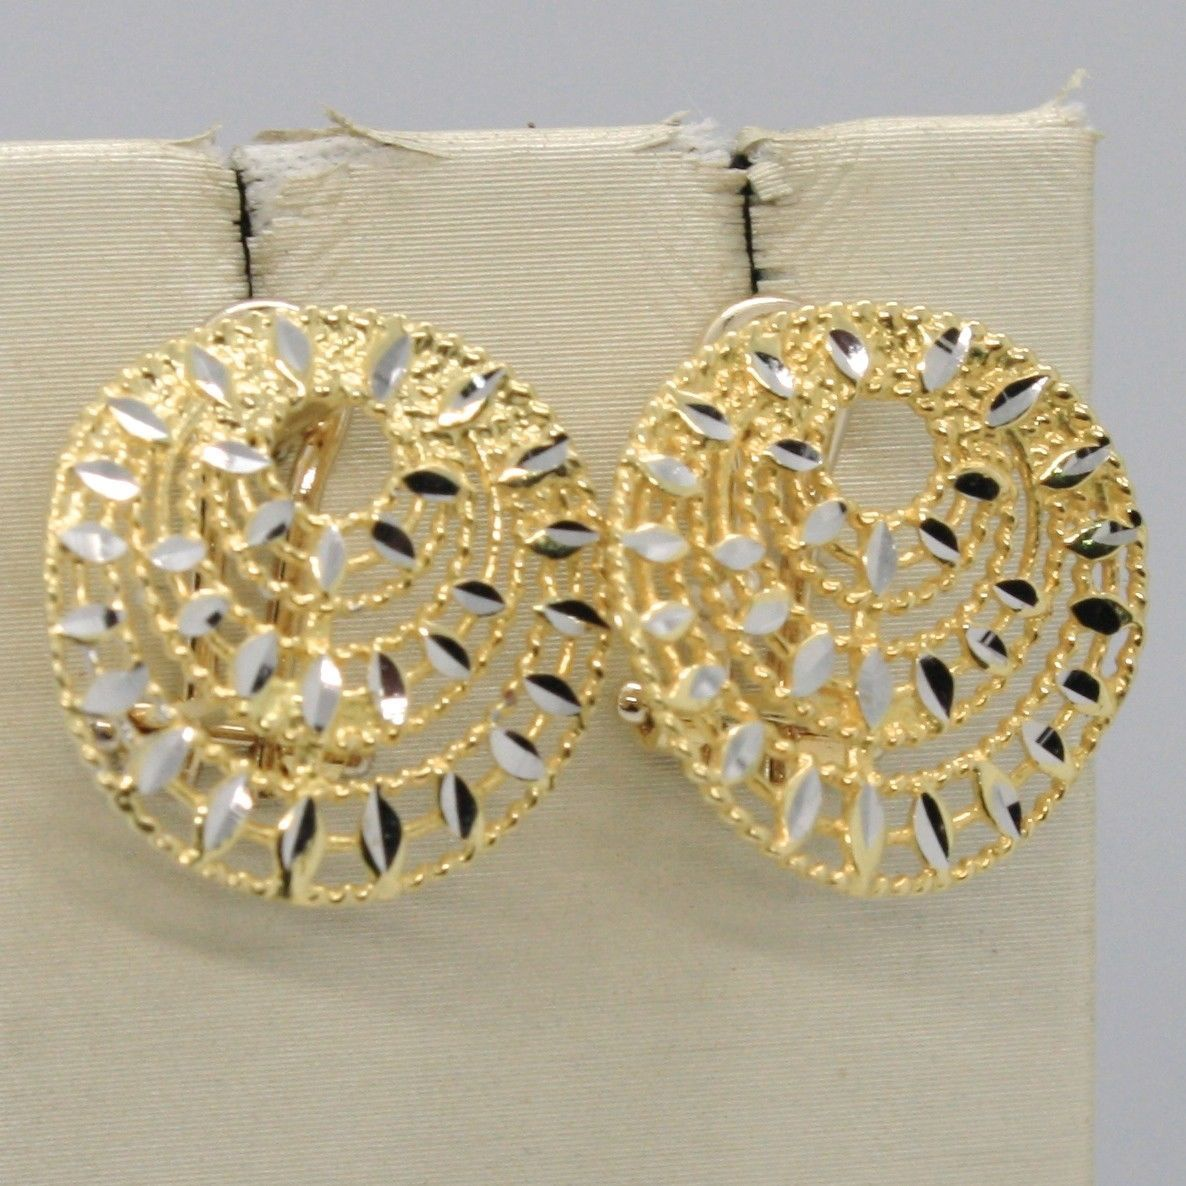 EARRINGS YELLOW AND WHITE GOLD 750 18K SHINY AND MILLED WITH CLIP MADE IN ITALY